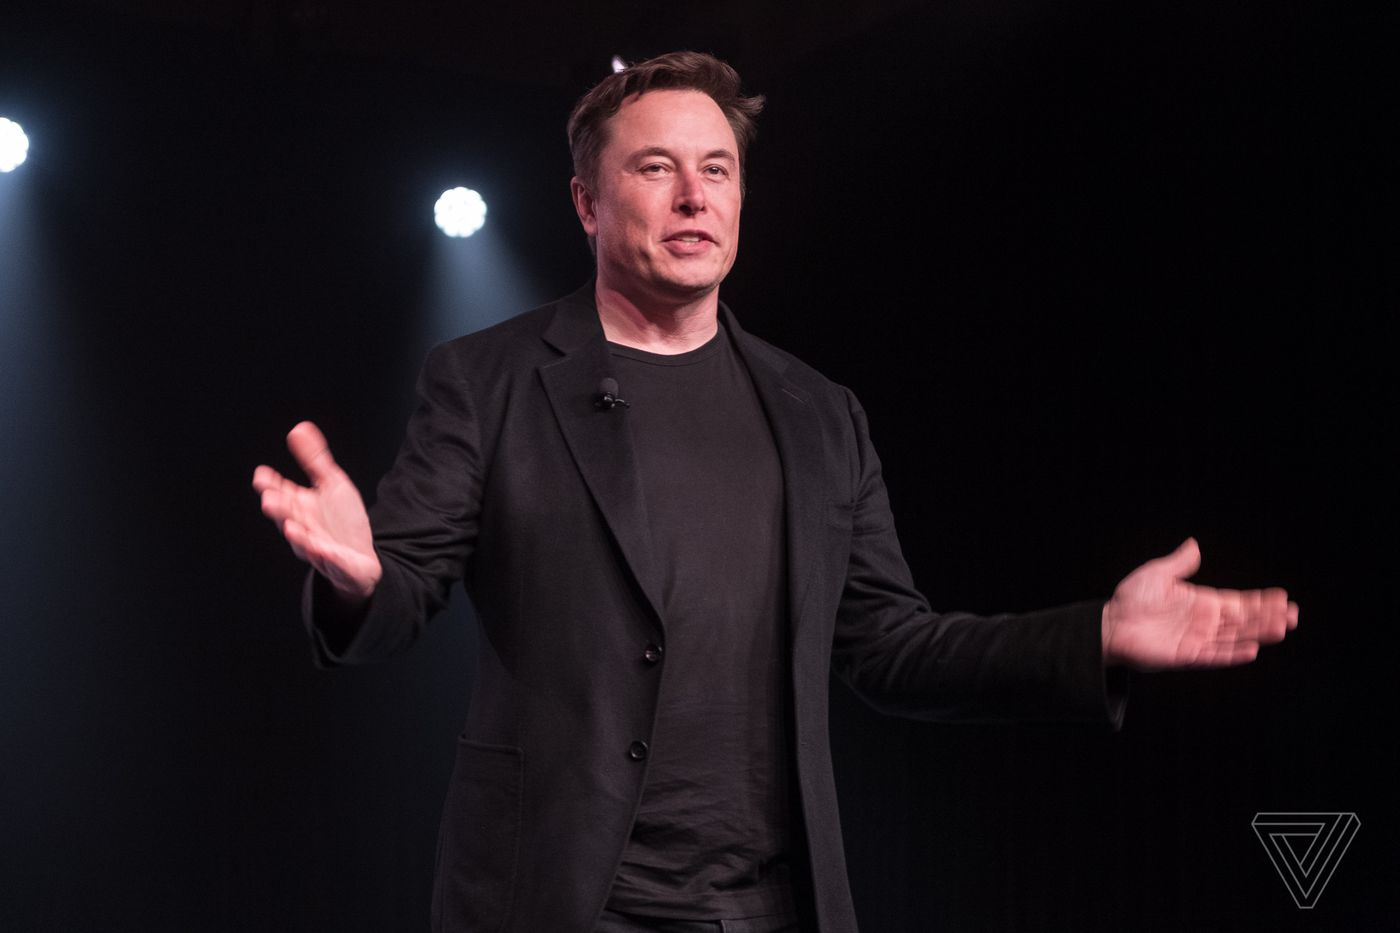 Tesla CEO Elon Musk says his Twitter DMs are mostly for swapping memes -  The Verge